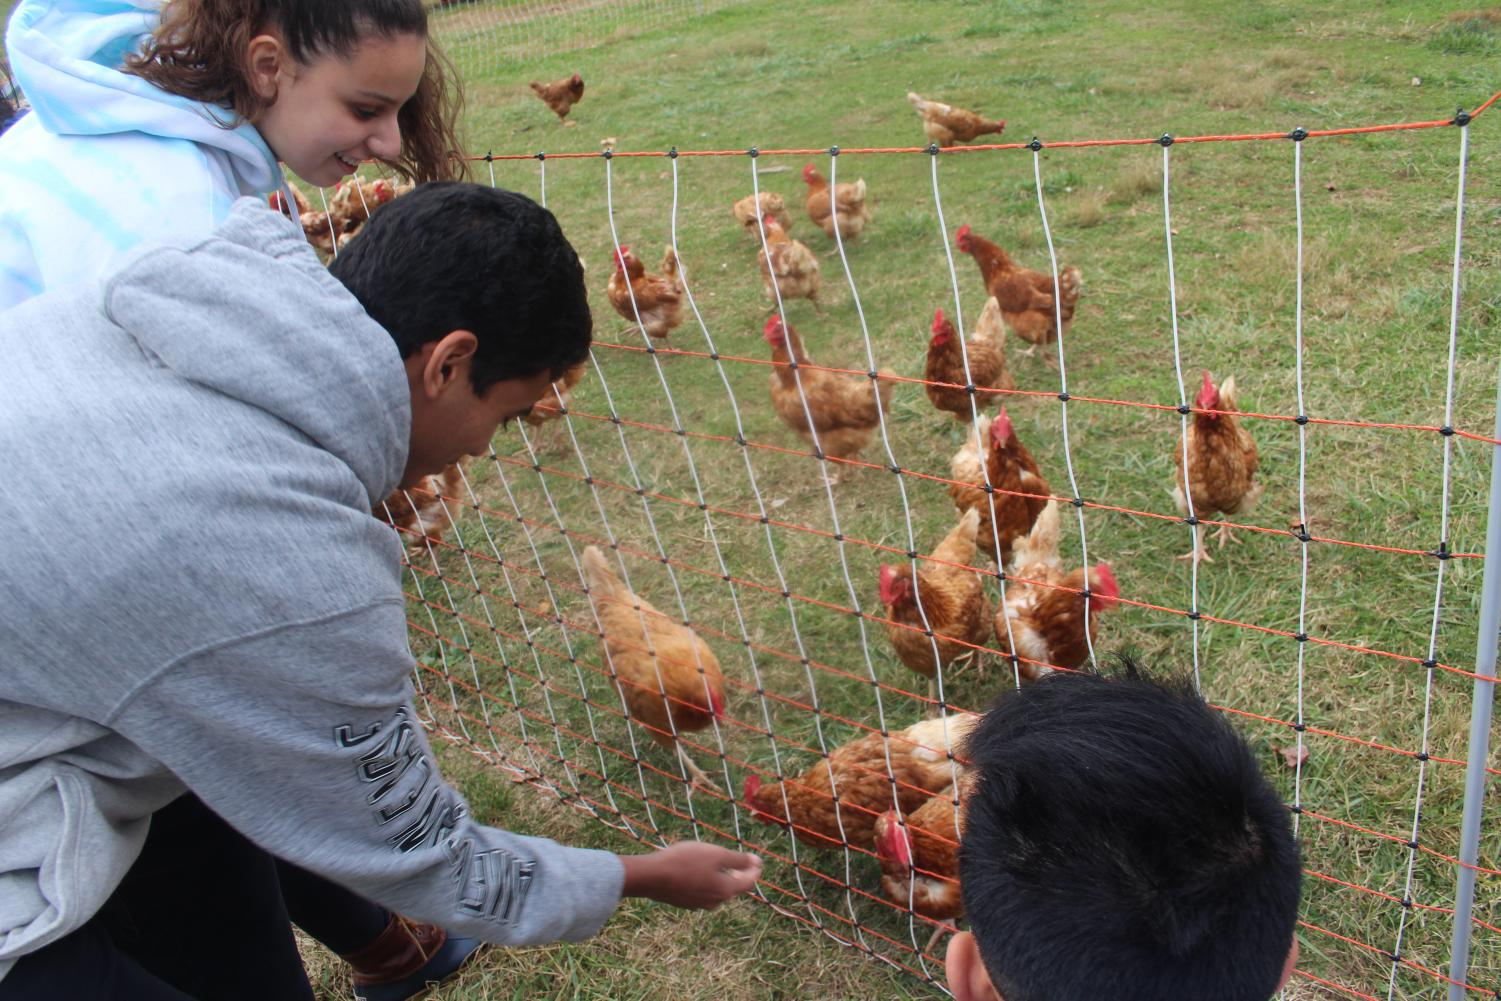 Zoe Hendricks (11), Ritvik Chennupati (11), and Franci Yang (11) feed Whitehall Farm chickens as Farmer Jeff discusses the process of cultivation (Photo by Colleen Sherry).